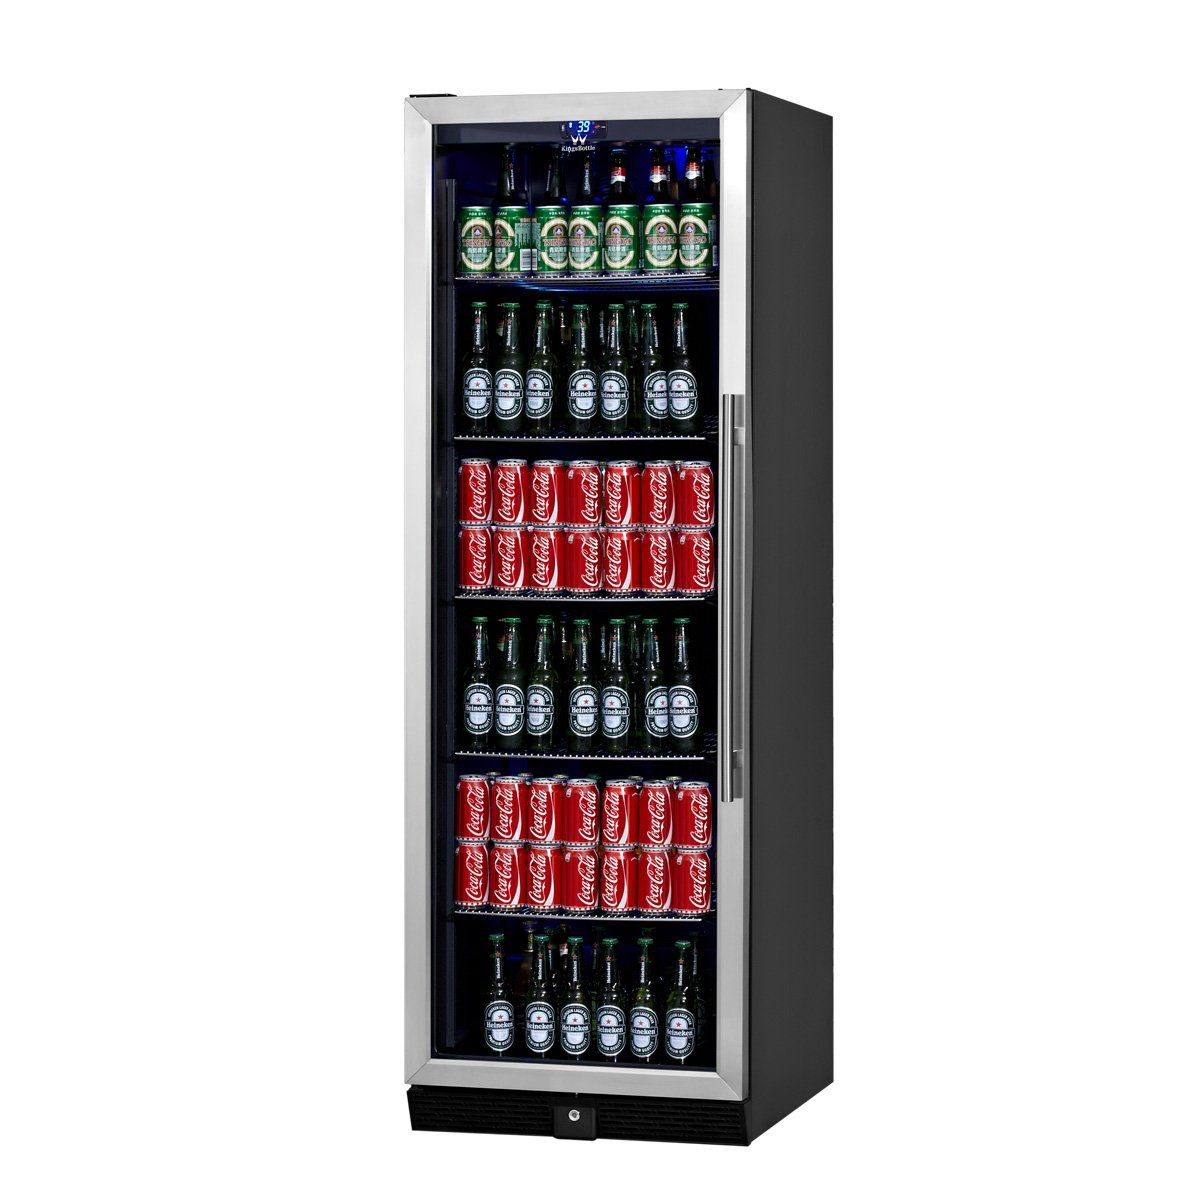 Kingsbottle Builtin Beer And Beverage Cooler Refrigerator 450 Can Dual Temperature Drinks Coole Built In Beverage Cooler Beverage Cooler Beverage Refrigerator